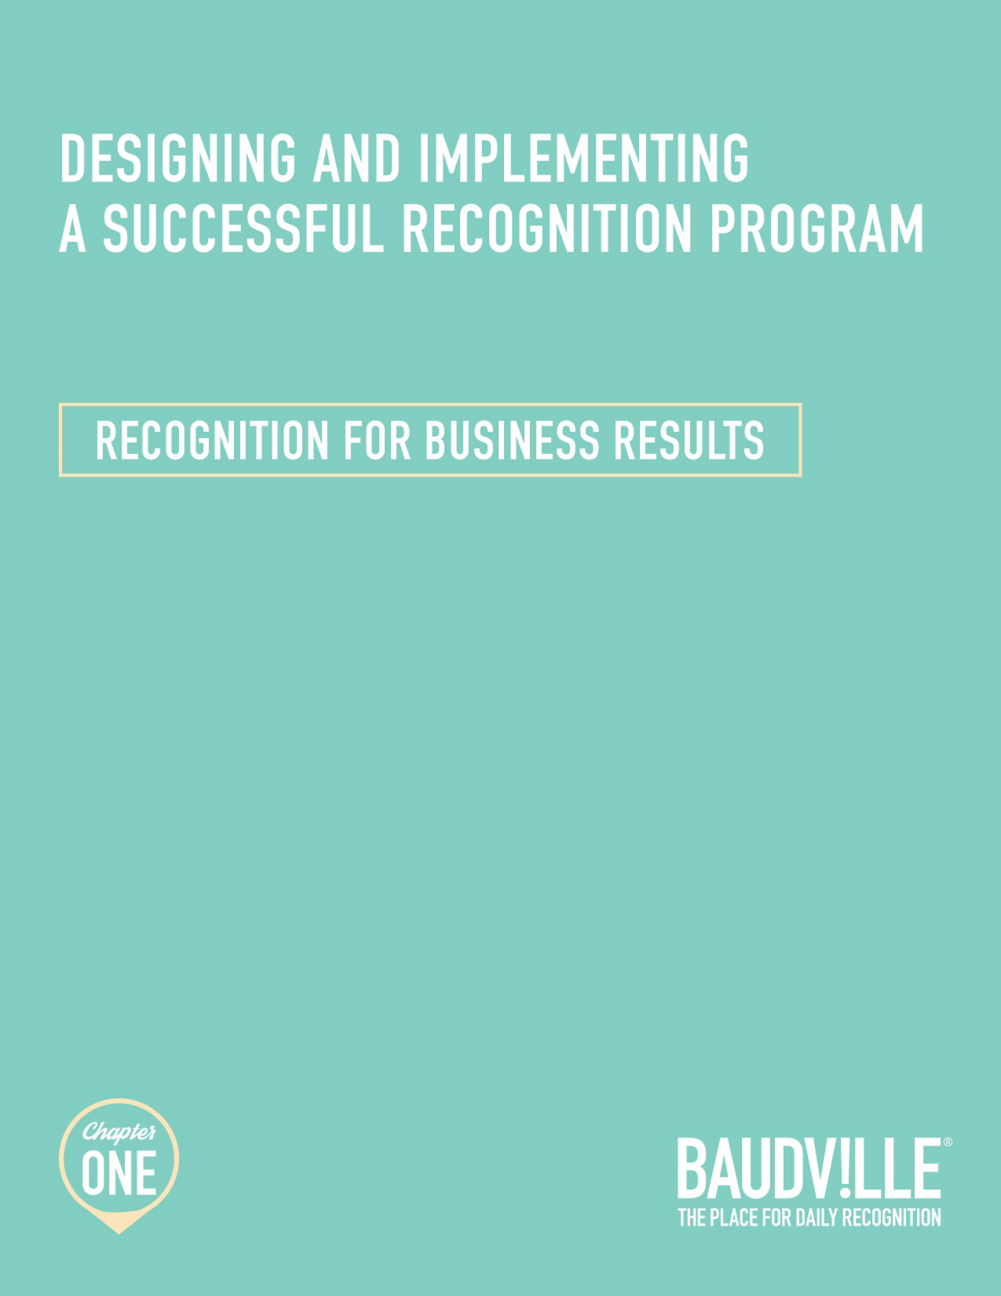 Download Design and Implement A Successful Recognition Program: Recognition for Business Results